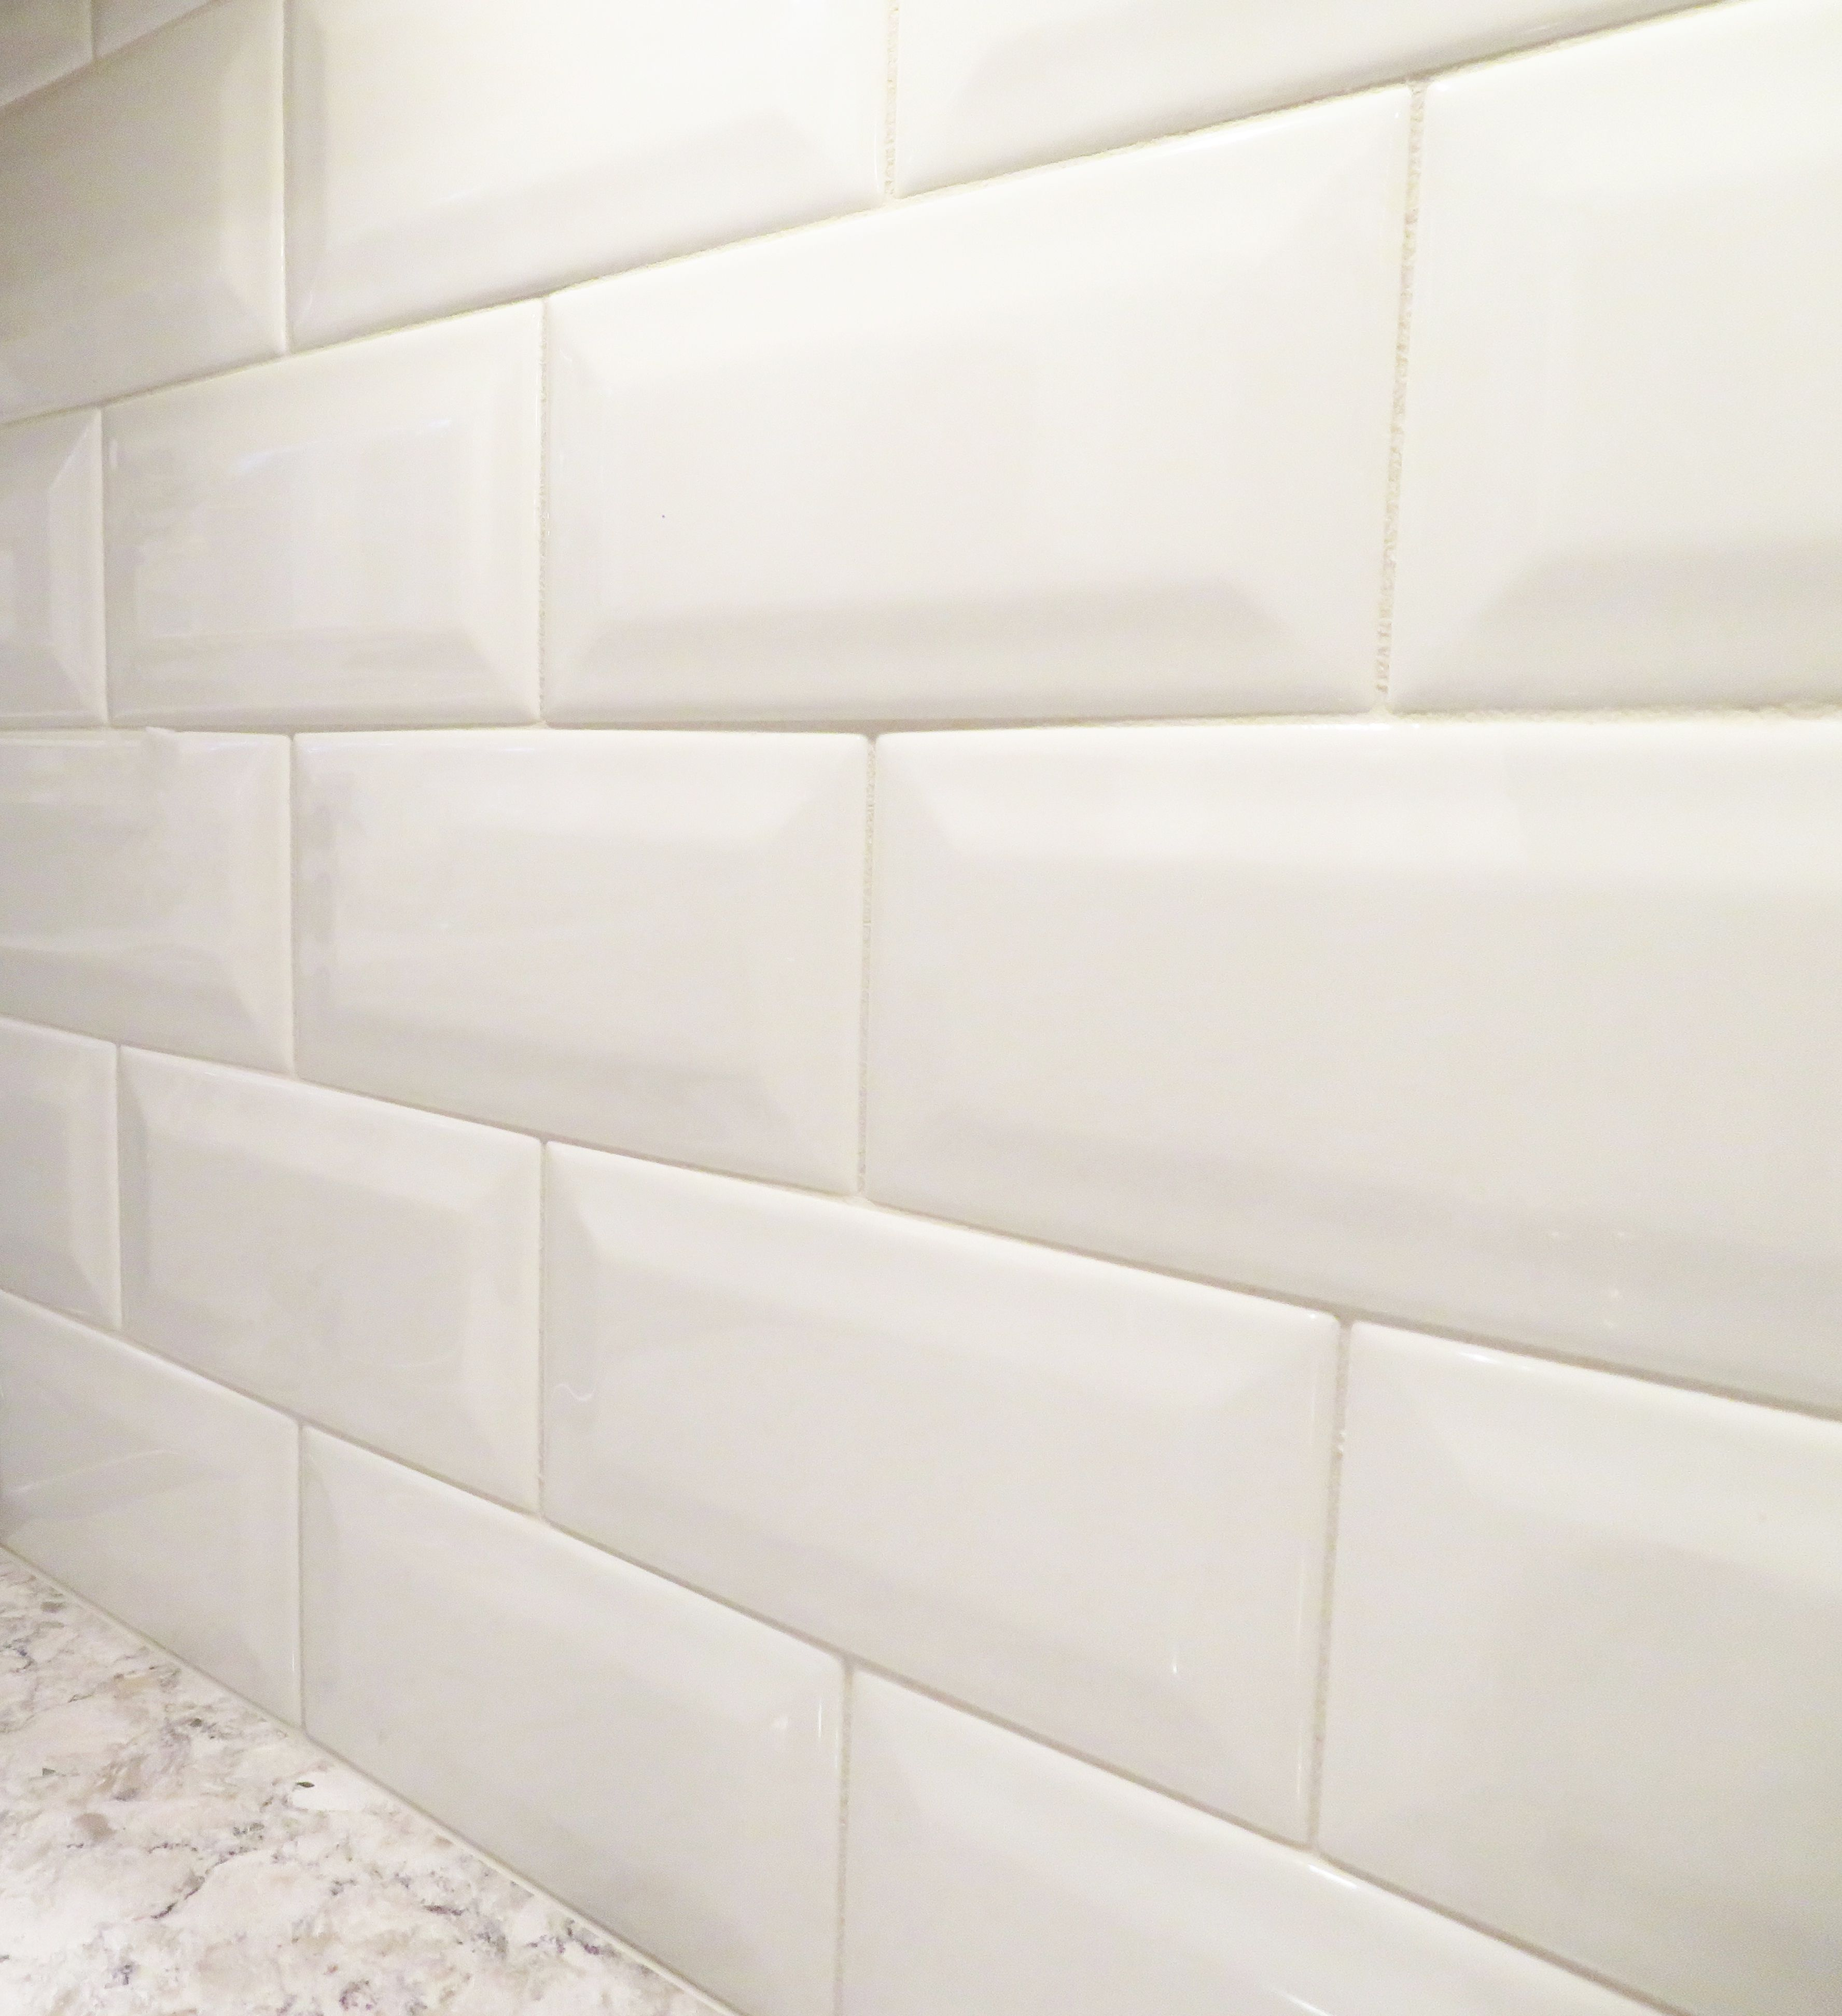 Unusual 12X12 Ceiling Tile Replacement Tiny 12X12 Ceramic Floor Tile Rectangular 12X12 Peel And Stick Floor Tile 16X16 Ceramic Tile Young 2 X 2 Ceiling Tile Fresh24X24 Marble Floor Tiles Backsplash: Daltile Rittenhouse 3x6 Beveled Subway Tile In Bisquit ..